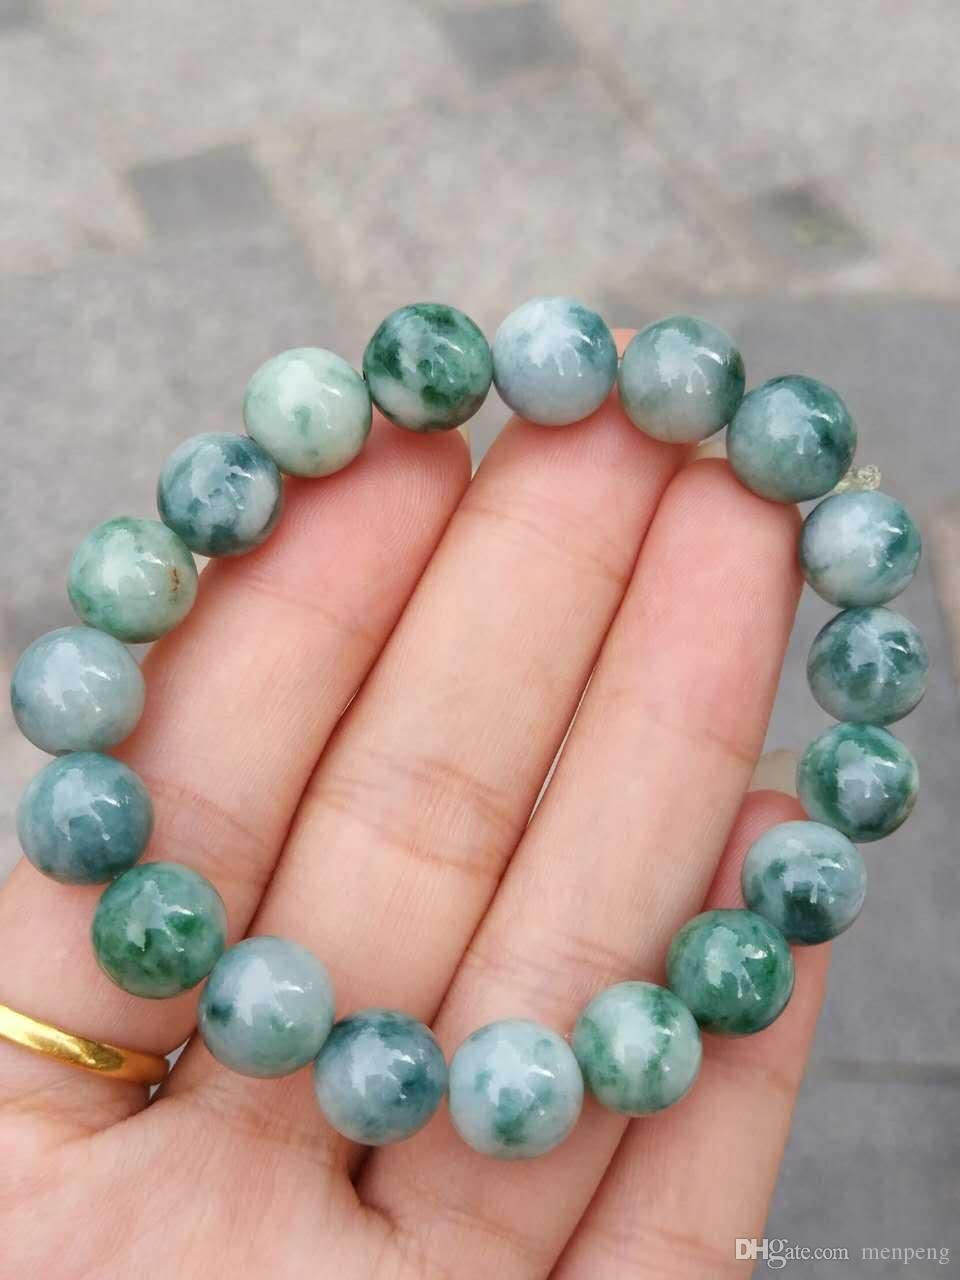 Jade A goods, wave flower hand string, baby colour and lustre is rich, elegant and polished, kind of old water, jade is exquisite, very few